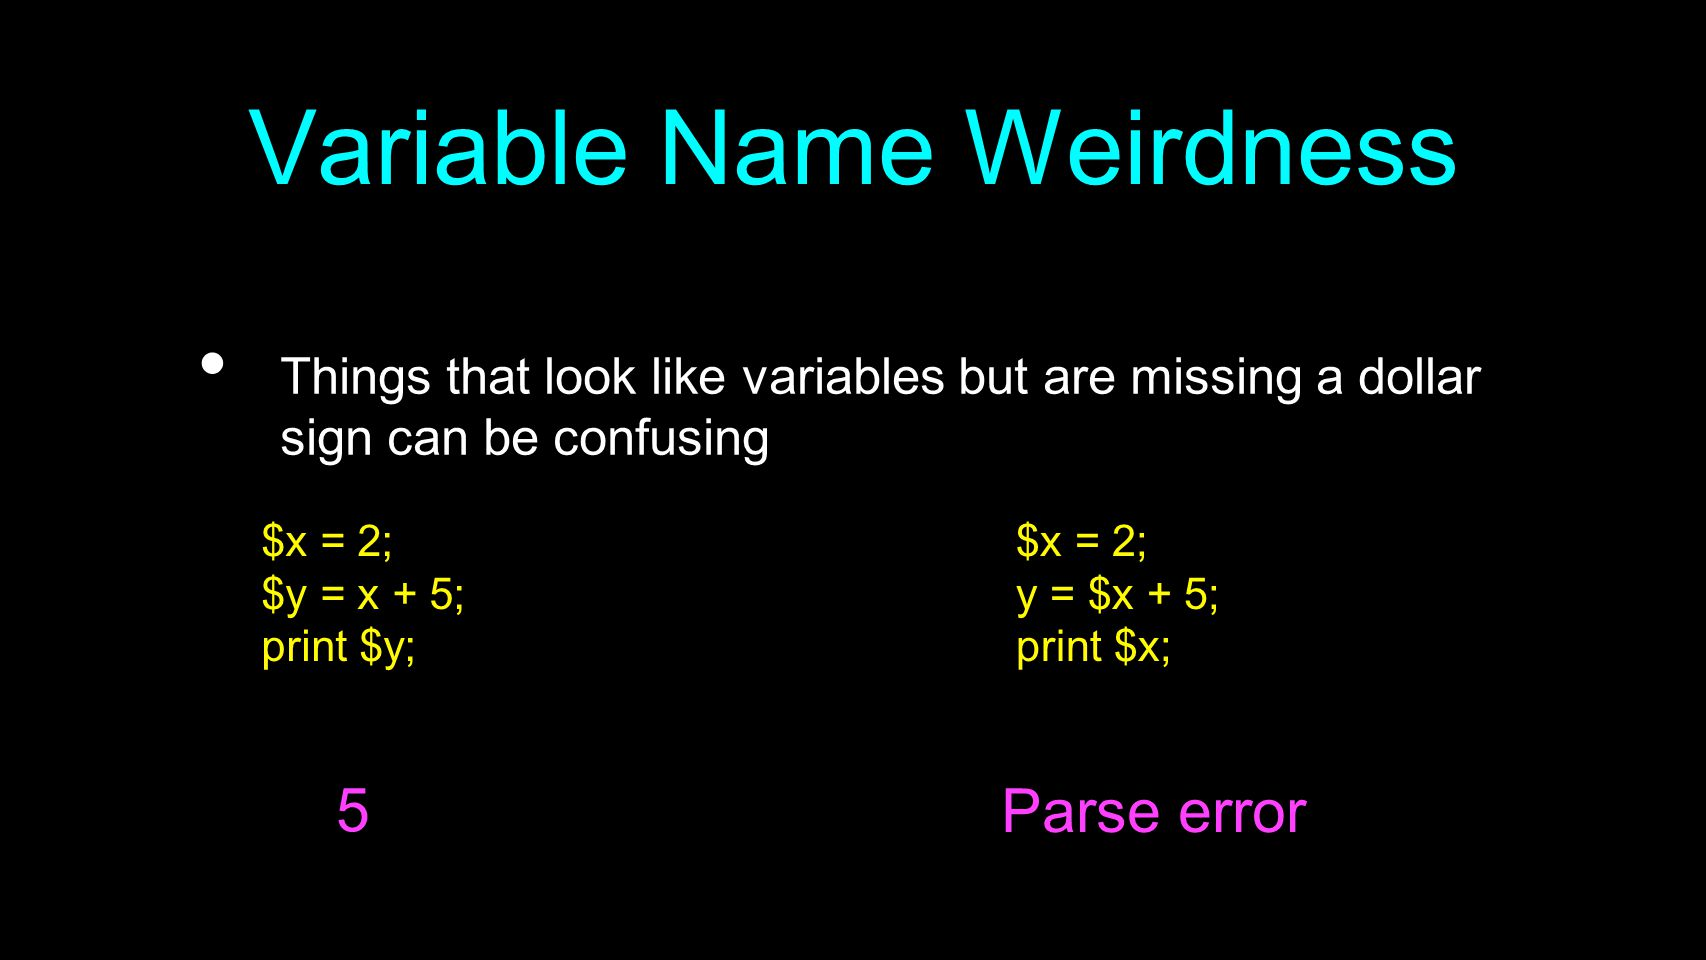 Variable Name Weirdness Things that look like variables but are missing a dollar sign can be confusing $x = 2; $y = x + 5; print $y; $x = 2; y = $x + 5; print $x; 5 Parse error